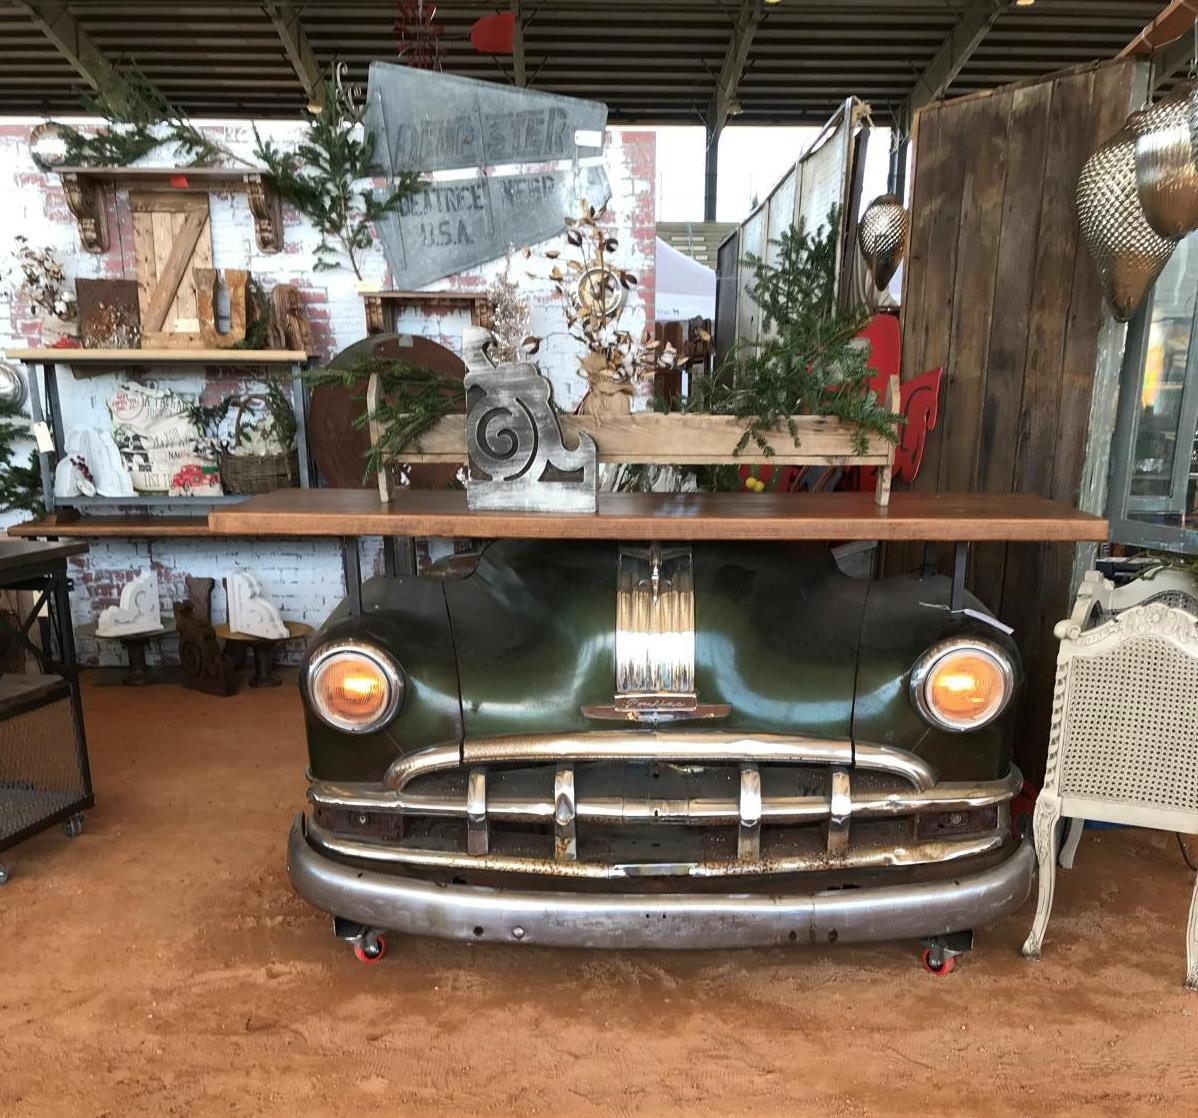 Vintage truck front bumper with shelf on top with bookend on top and Christmas decorations